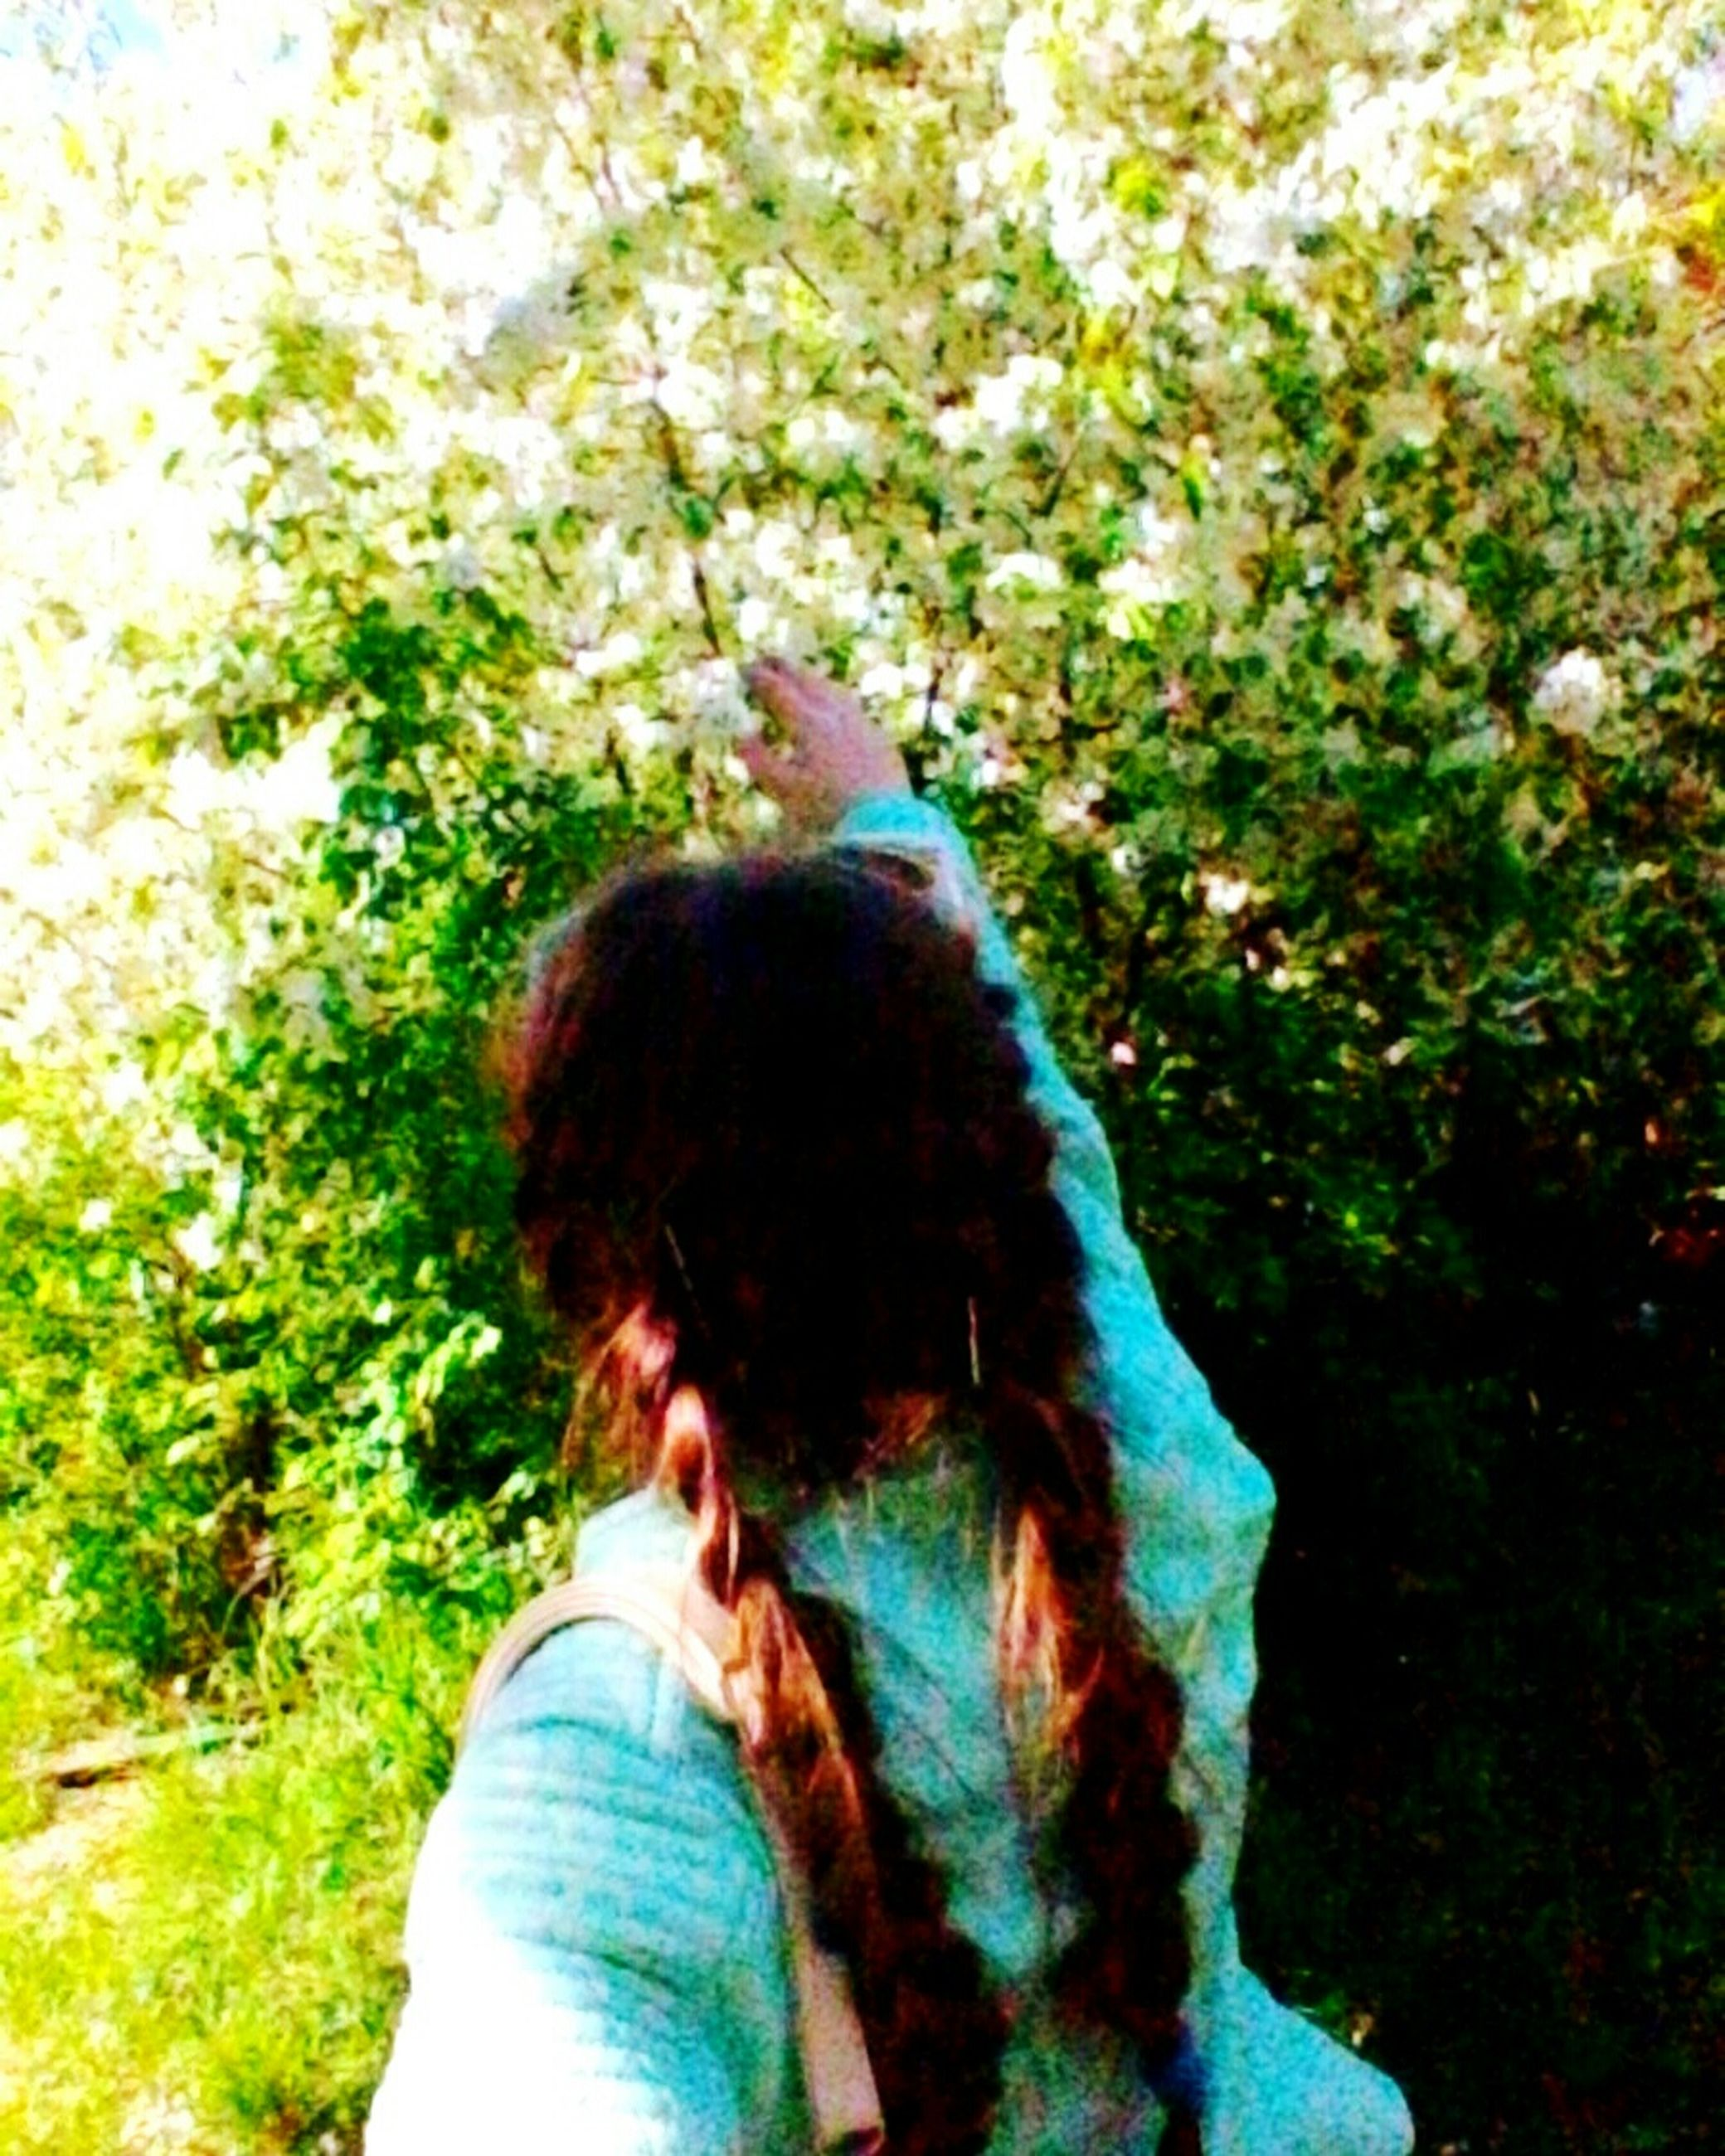 real people, tree, one person, leisure activity, day, lifestyles, rear view, outdoors, women, green color, nature, people